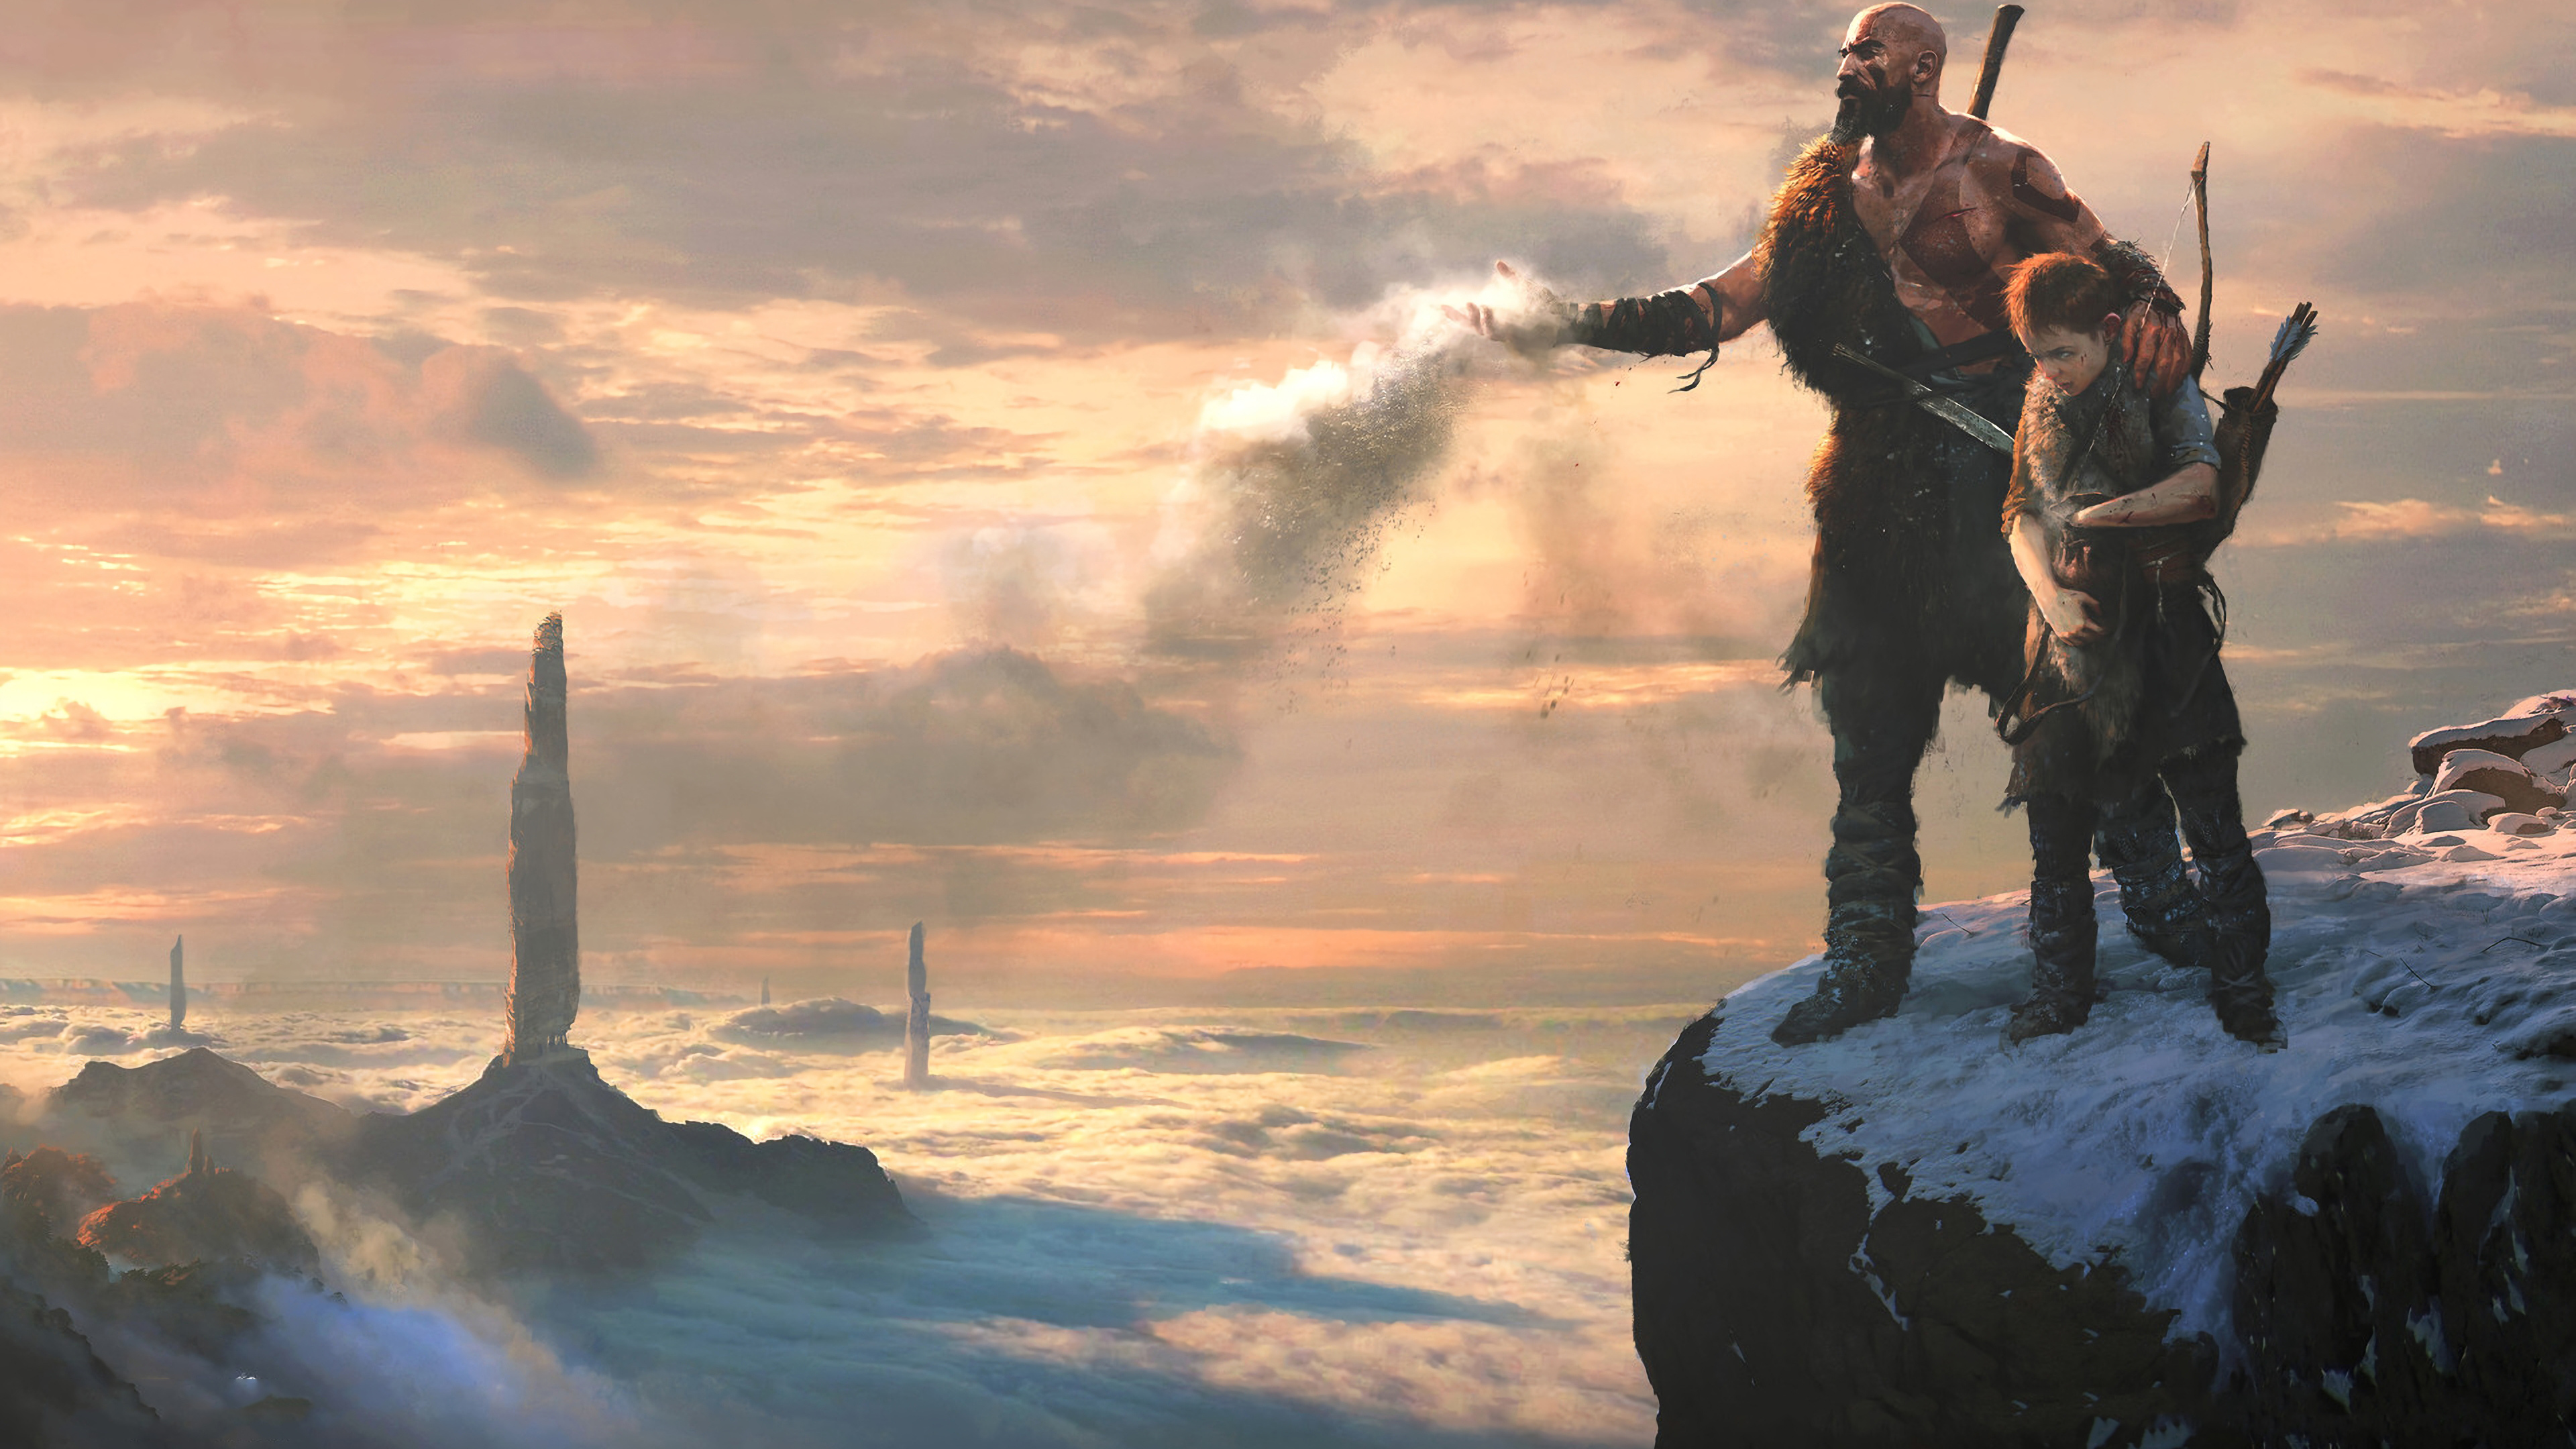 Wallpaper 4k God Of War 4 Ashes To Ashes 4k Wallpapers Games